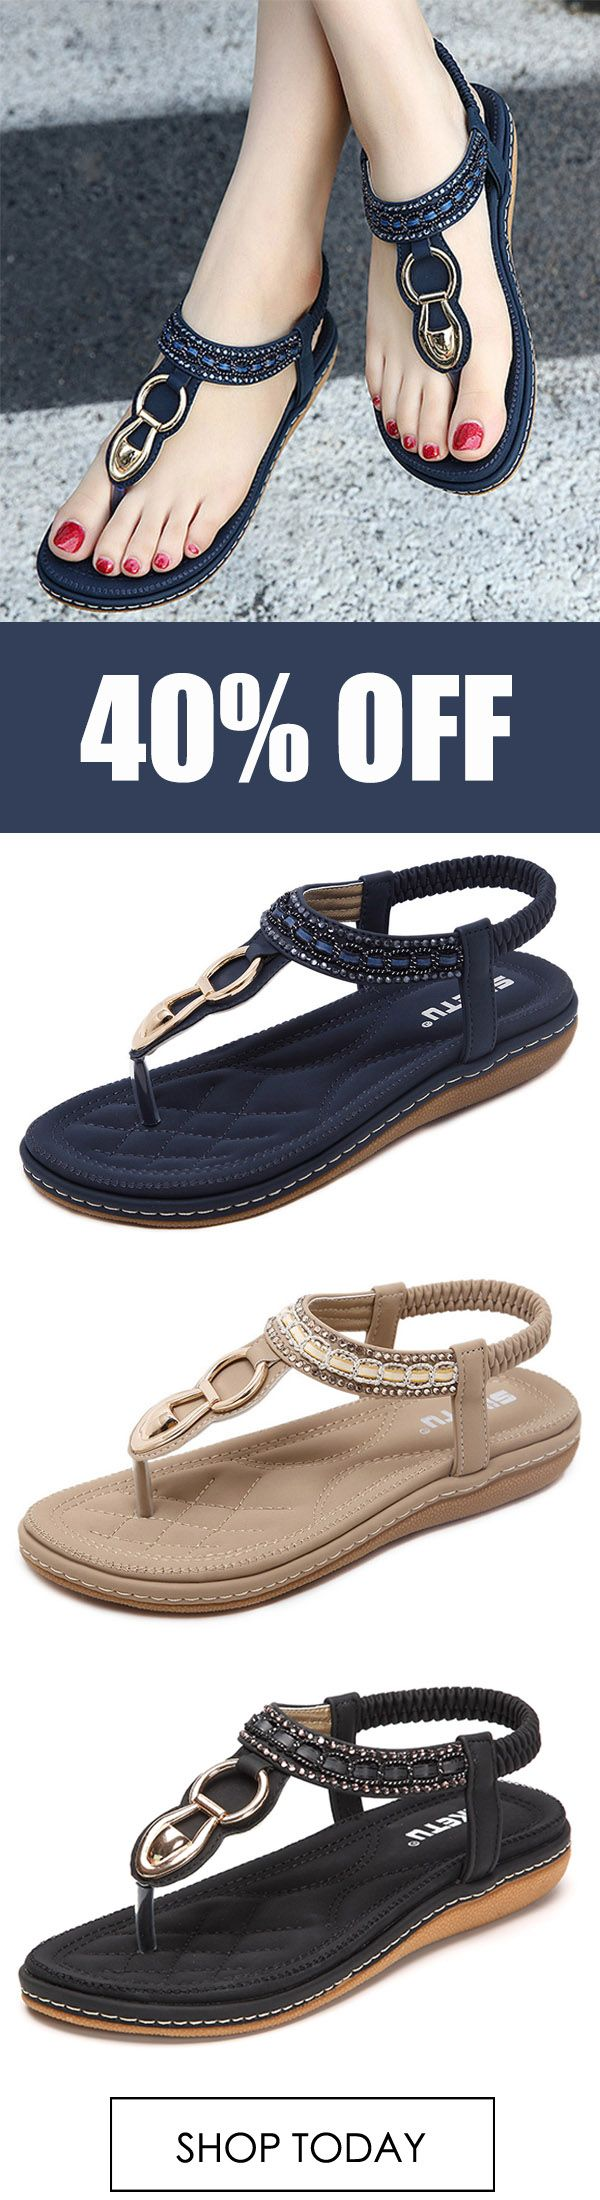 a7d80ff6a2c9 SOCOFY Outdoor Beach Flat Flip Flops Casual Flat Sandals.  fashion  summer   women  style  outfits